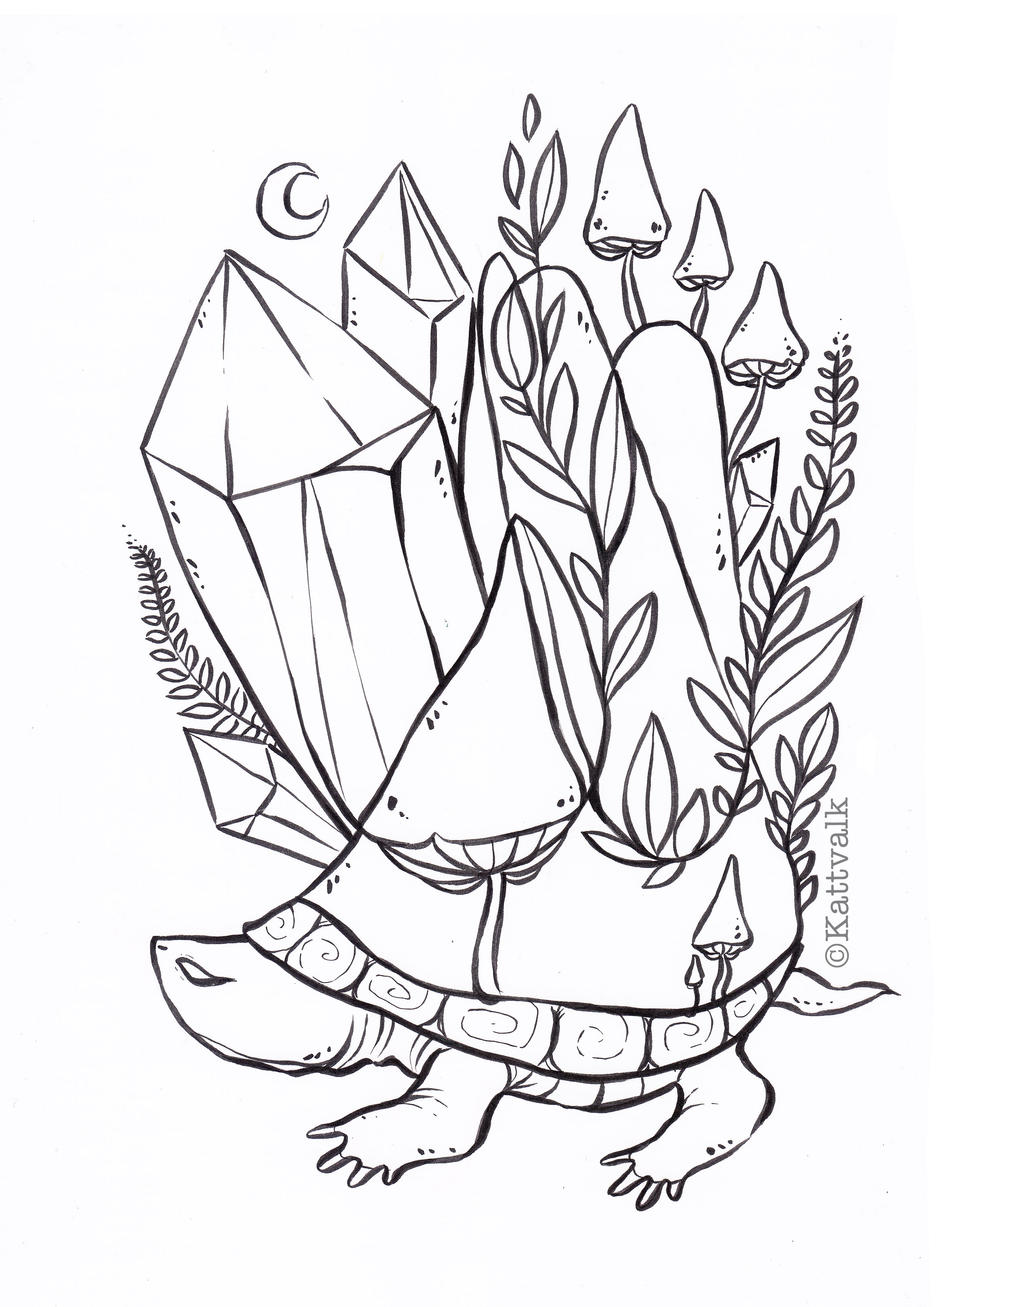 crystal turtle free coloring page by kattvalk on deviantart